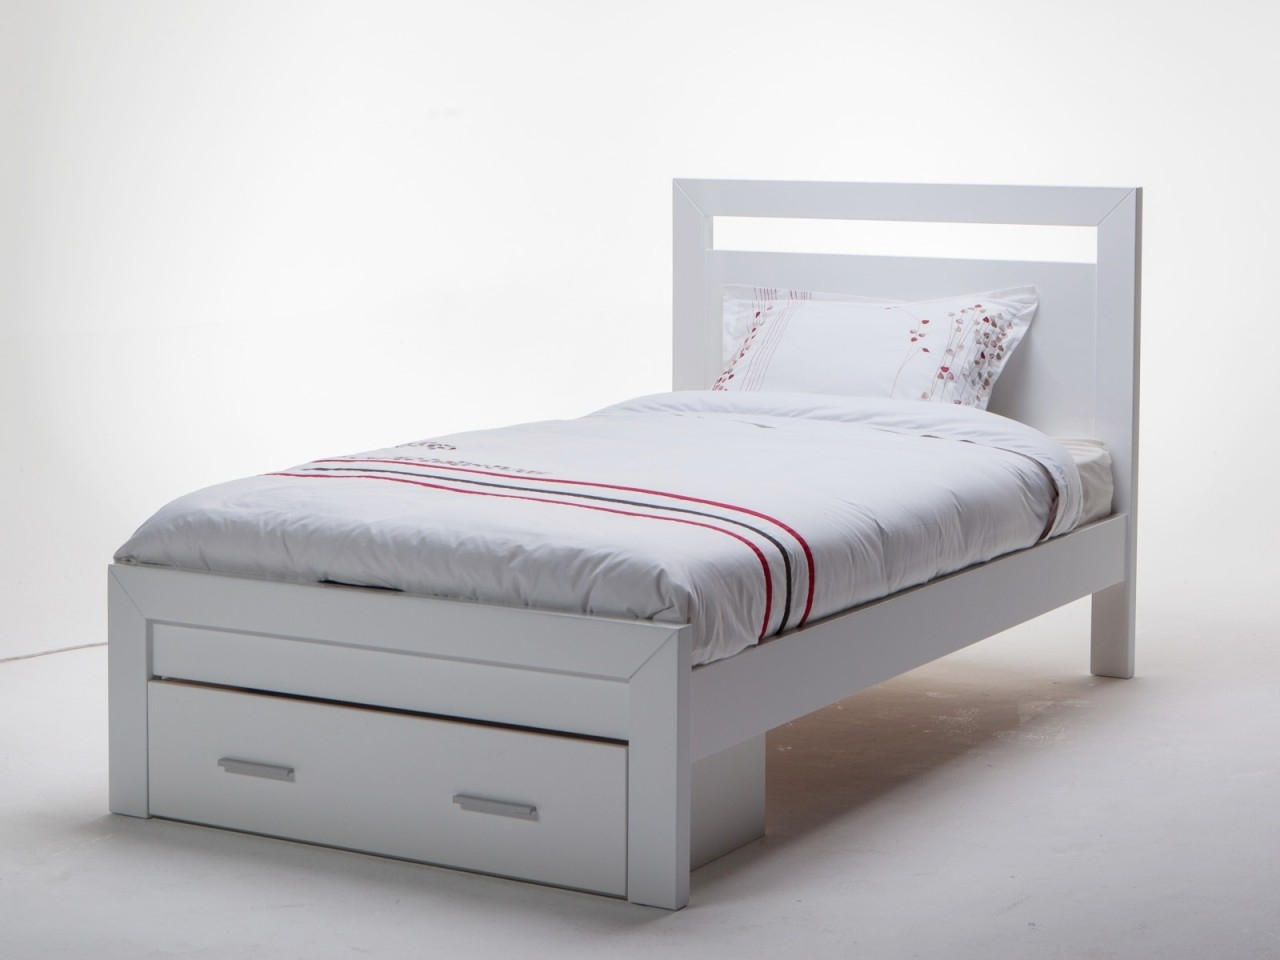 Single Bed Frame And Mattress Package